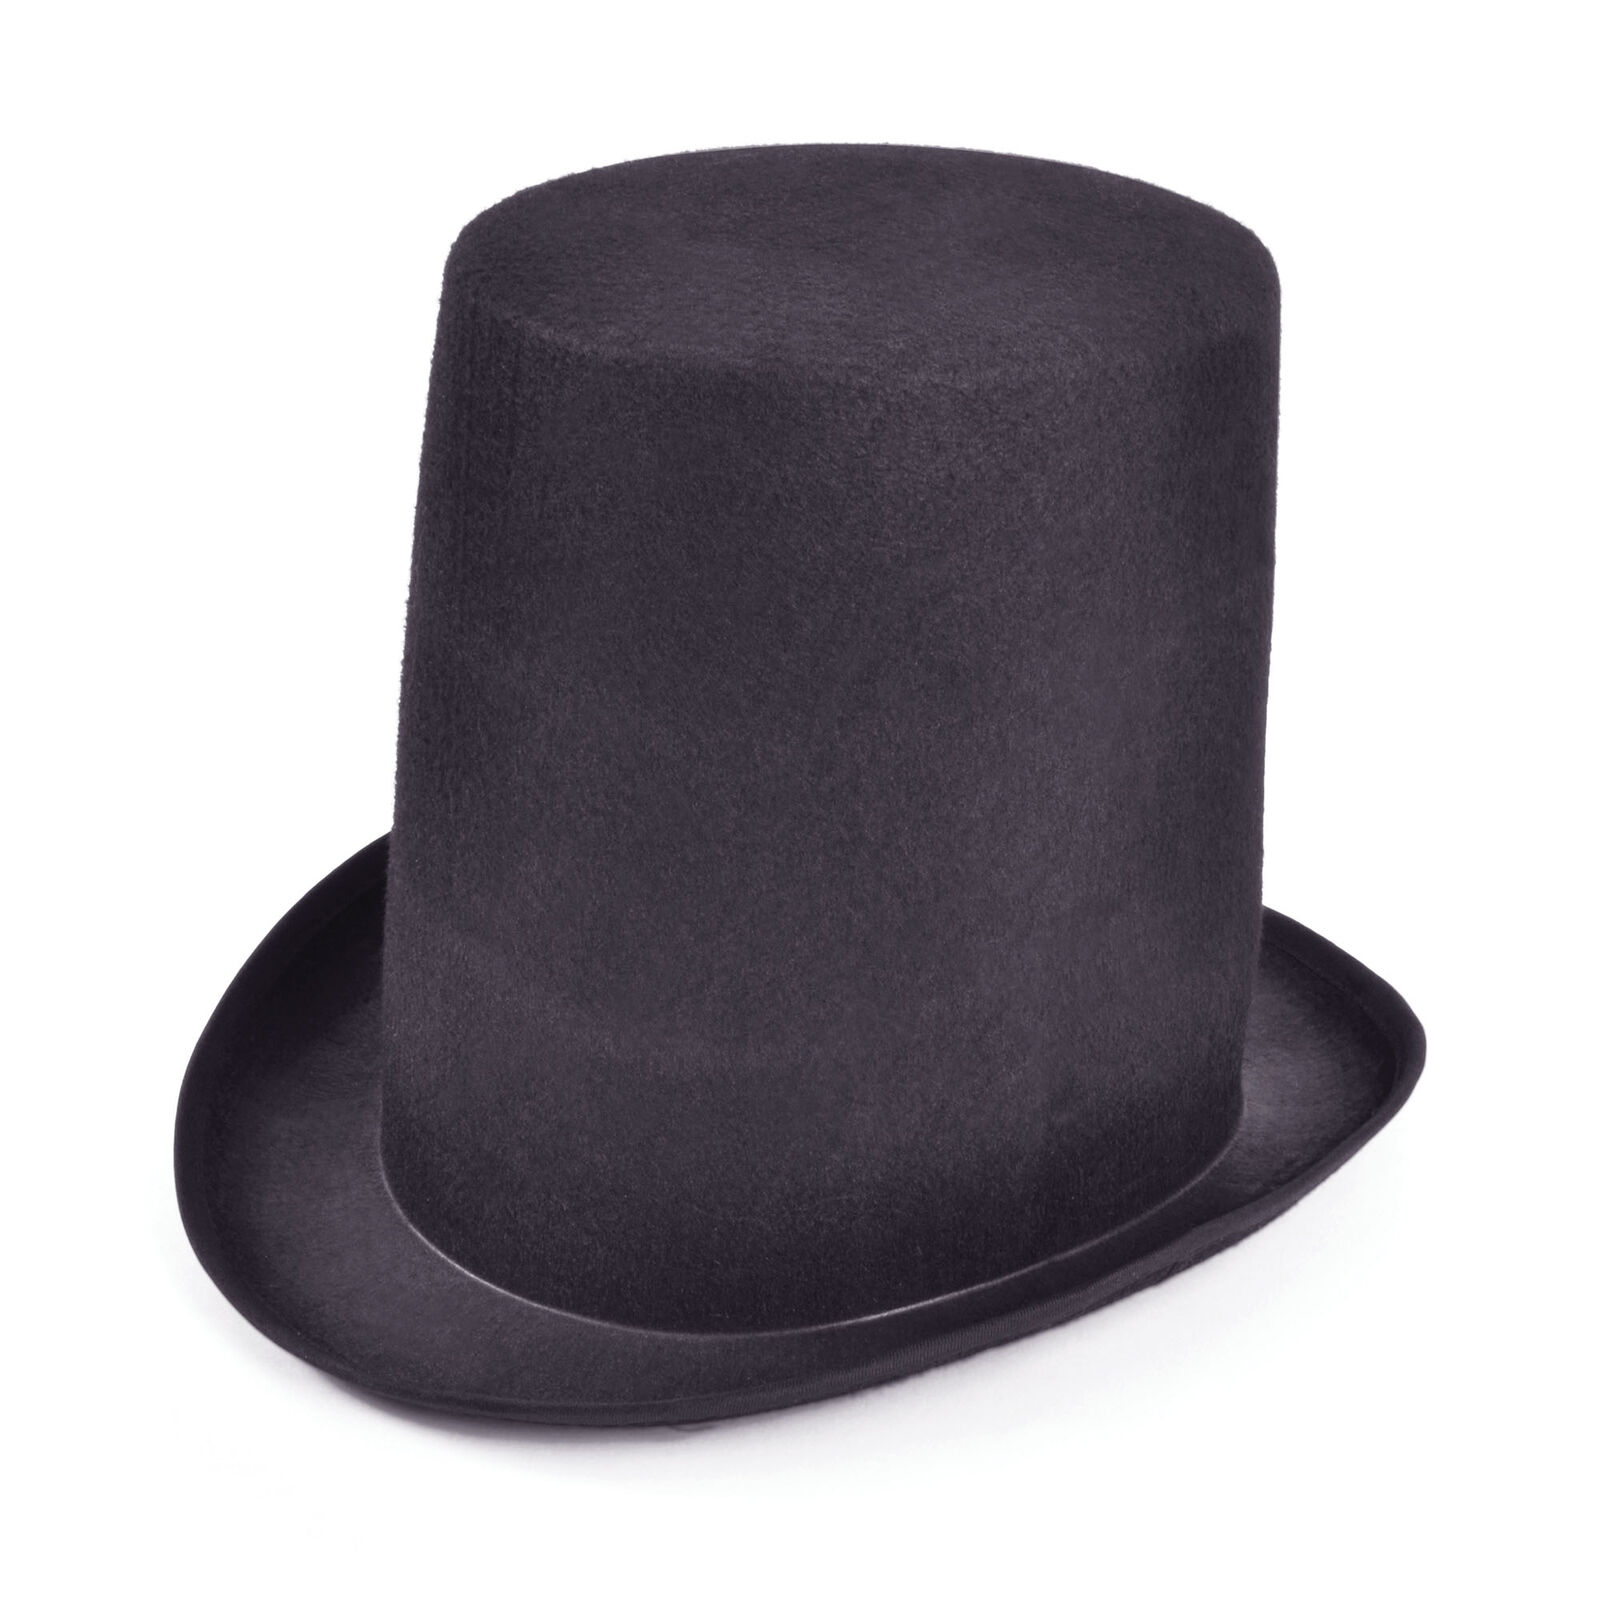 ADULT Tall Black Velour TOP HAT Victorian Stove pipe Gravedigger FANCY DRESS